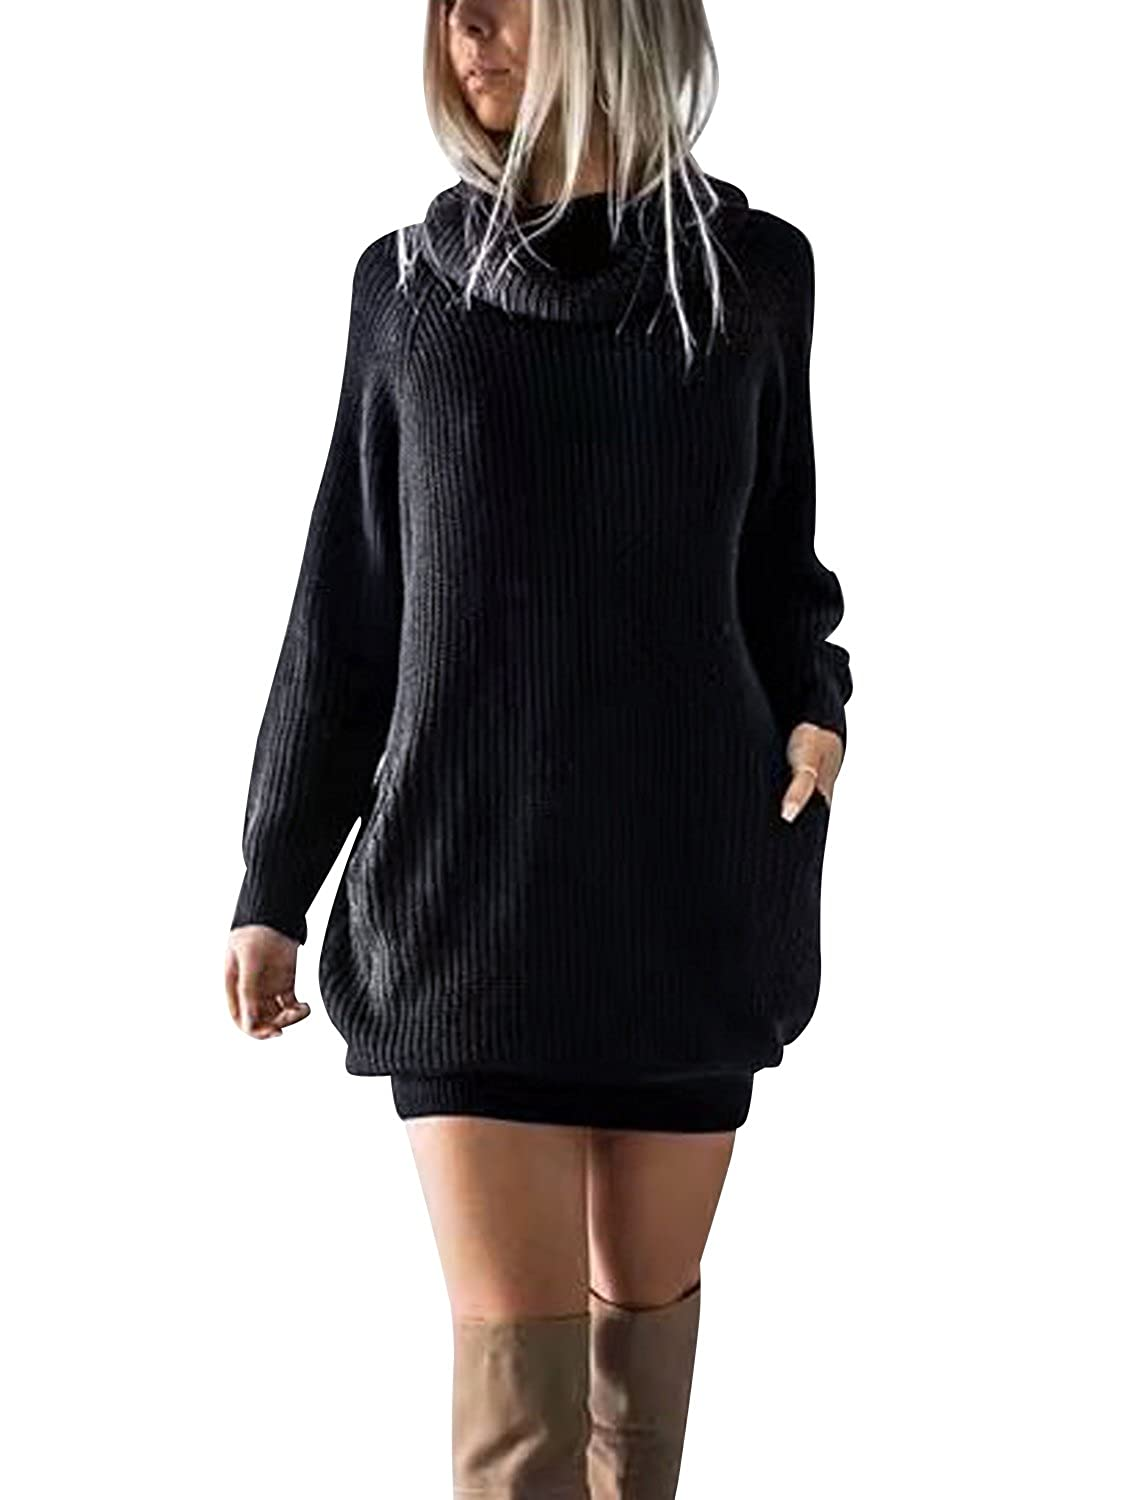 83a8ab652421 Simplee Women s Winter Warm Loose Turtleneck Oversized Pullover Sweater  Dress